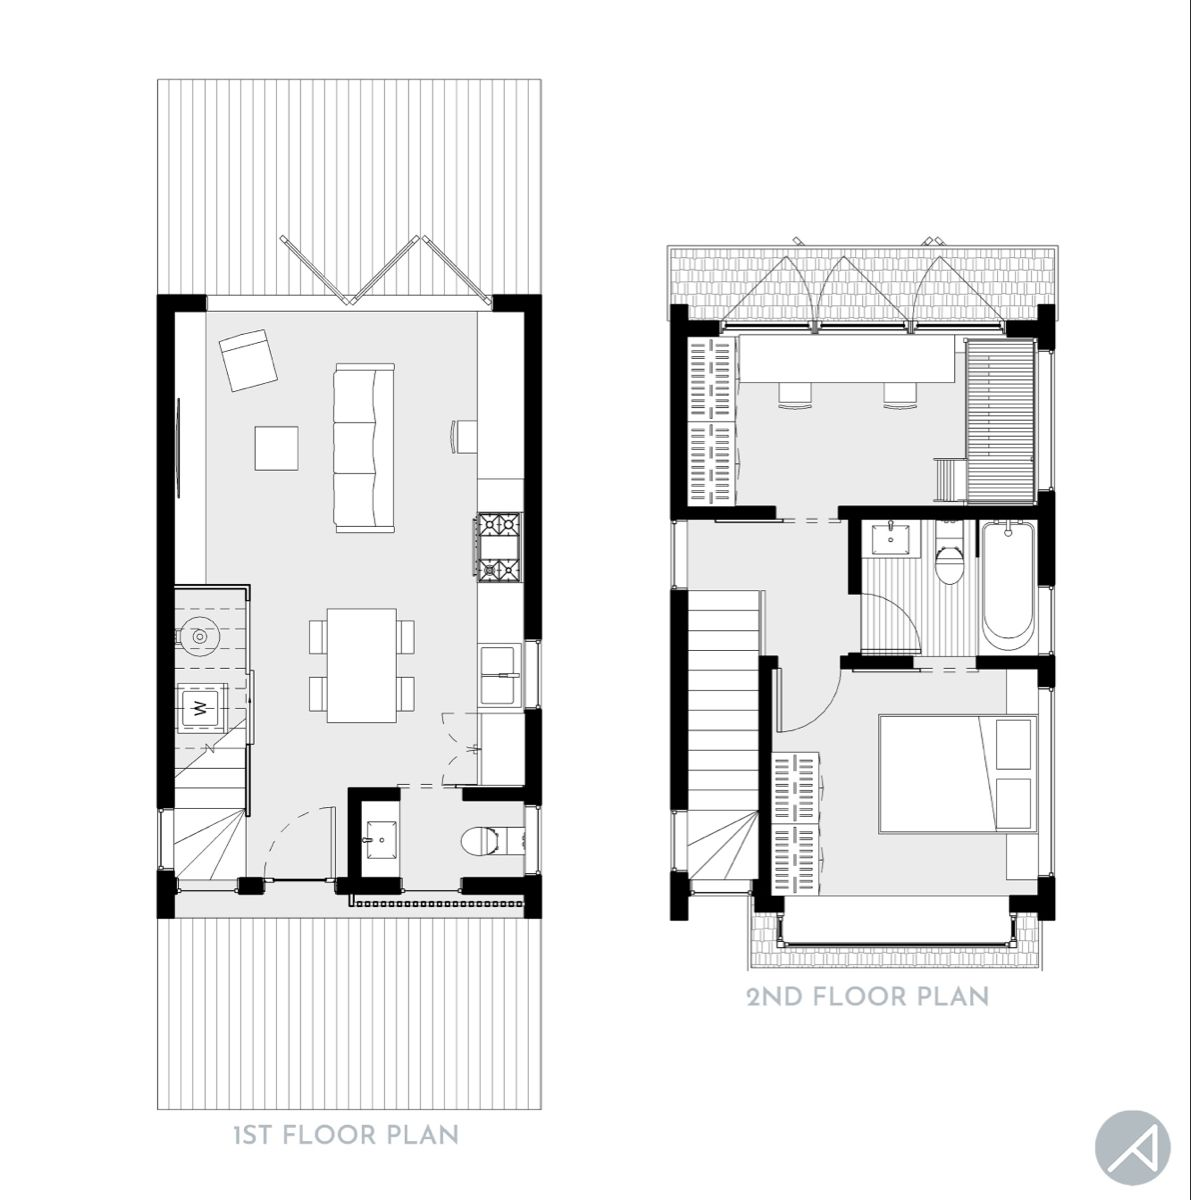 """Modern 2-Bedroom Compact Small House, 16' x 26' footprint only! 760 sf 2-story structure; 2 Beds & 1.5 Baths; 16'-0"""" W x 26'-0"""" D This is the smaller version of our previous Compact House plan, making this house even more affordable. #tinyhouseplans #homeplans #grannypods #smallhouseplans #tinyhomeslayout #tinyhome"""